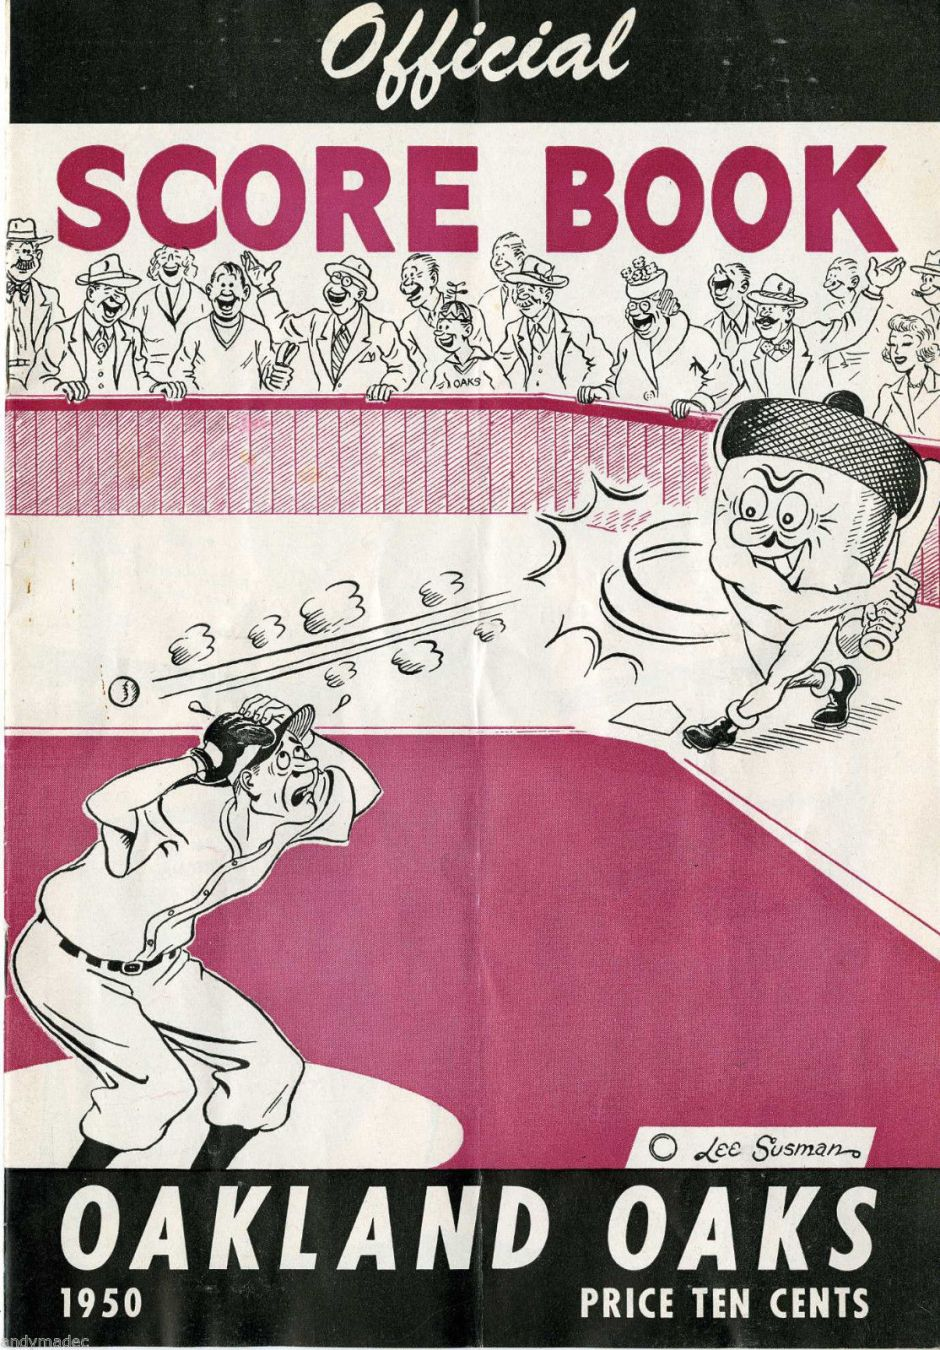 oakland-oaks-official-scorebook-ebay